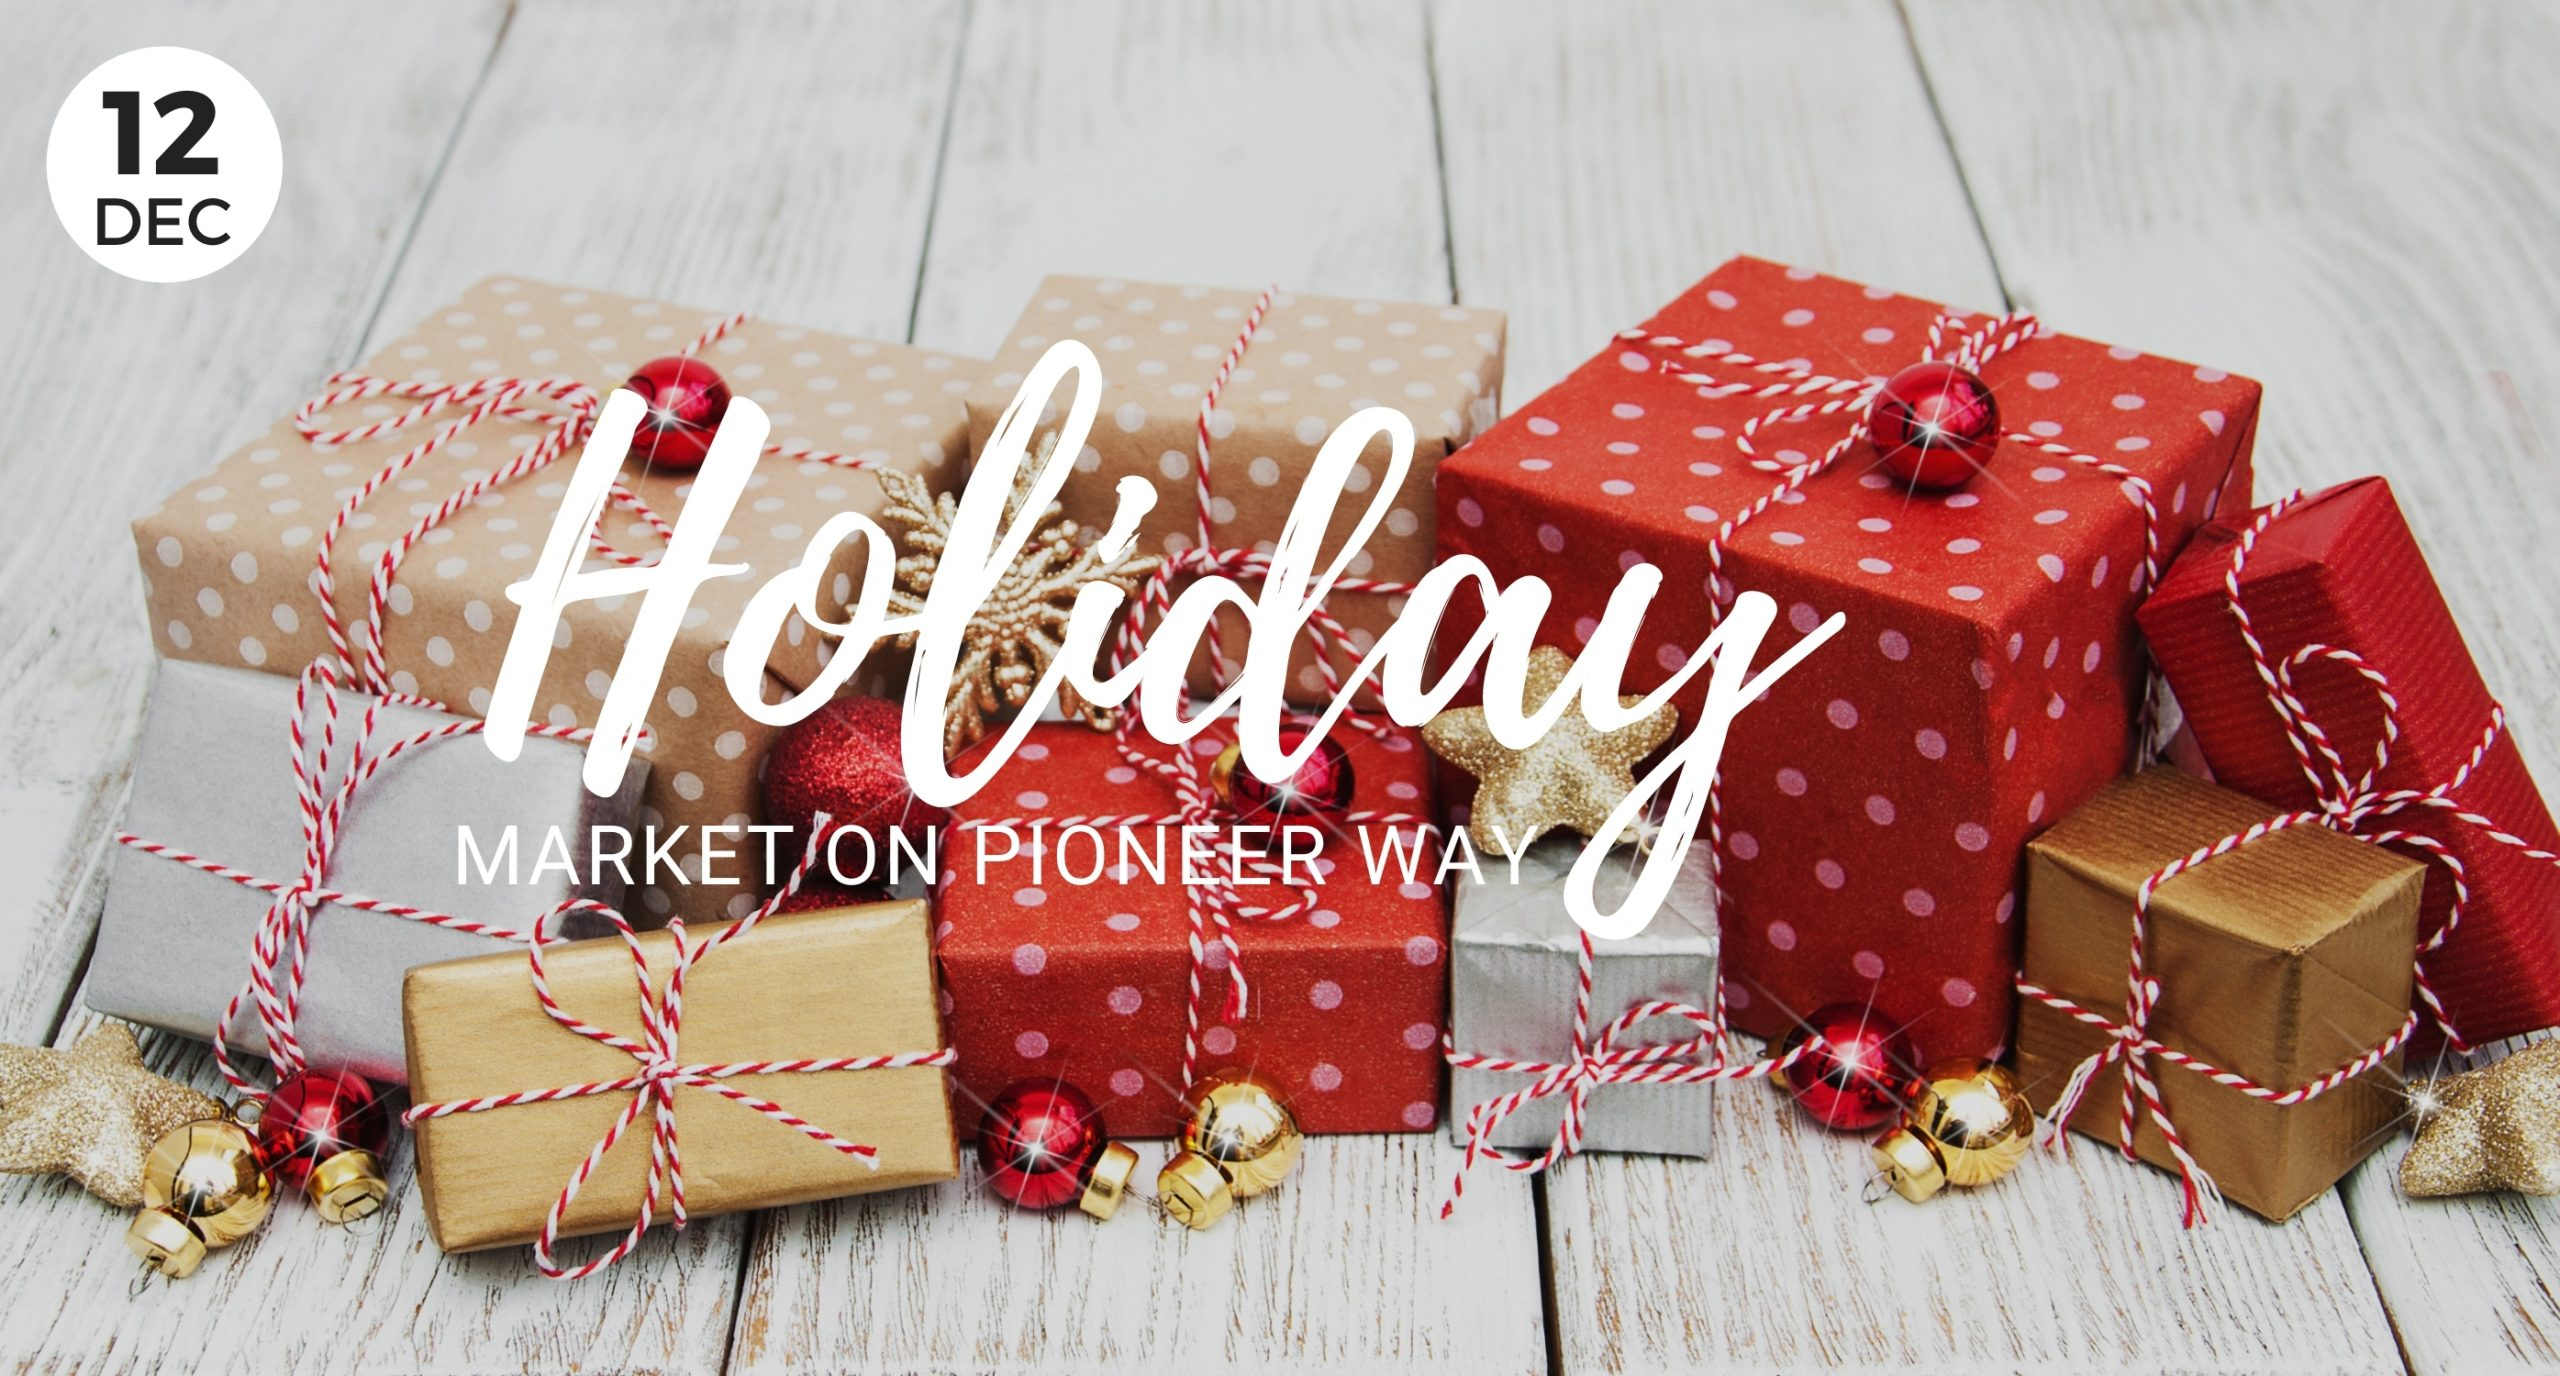 Pop-Up Holiday Market on Pioneer Way